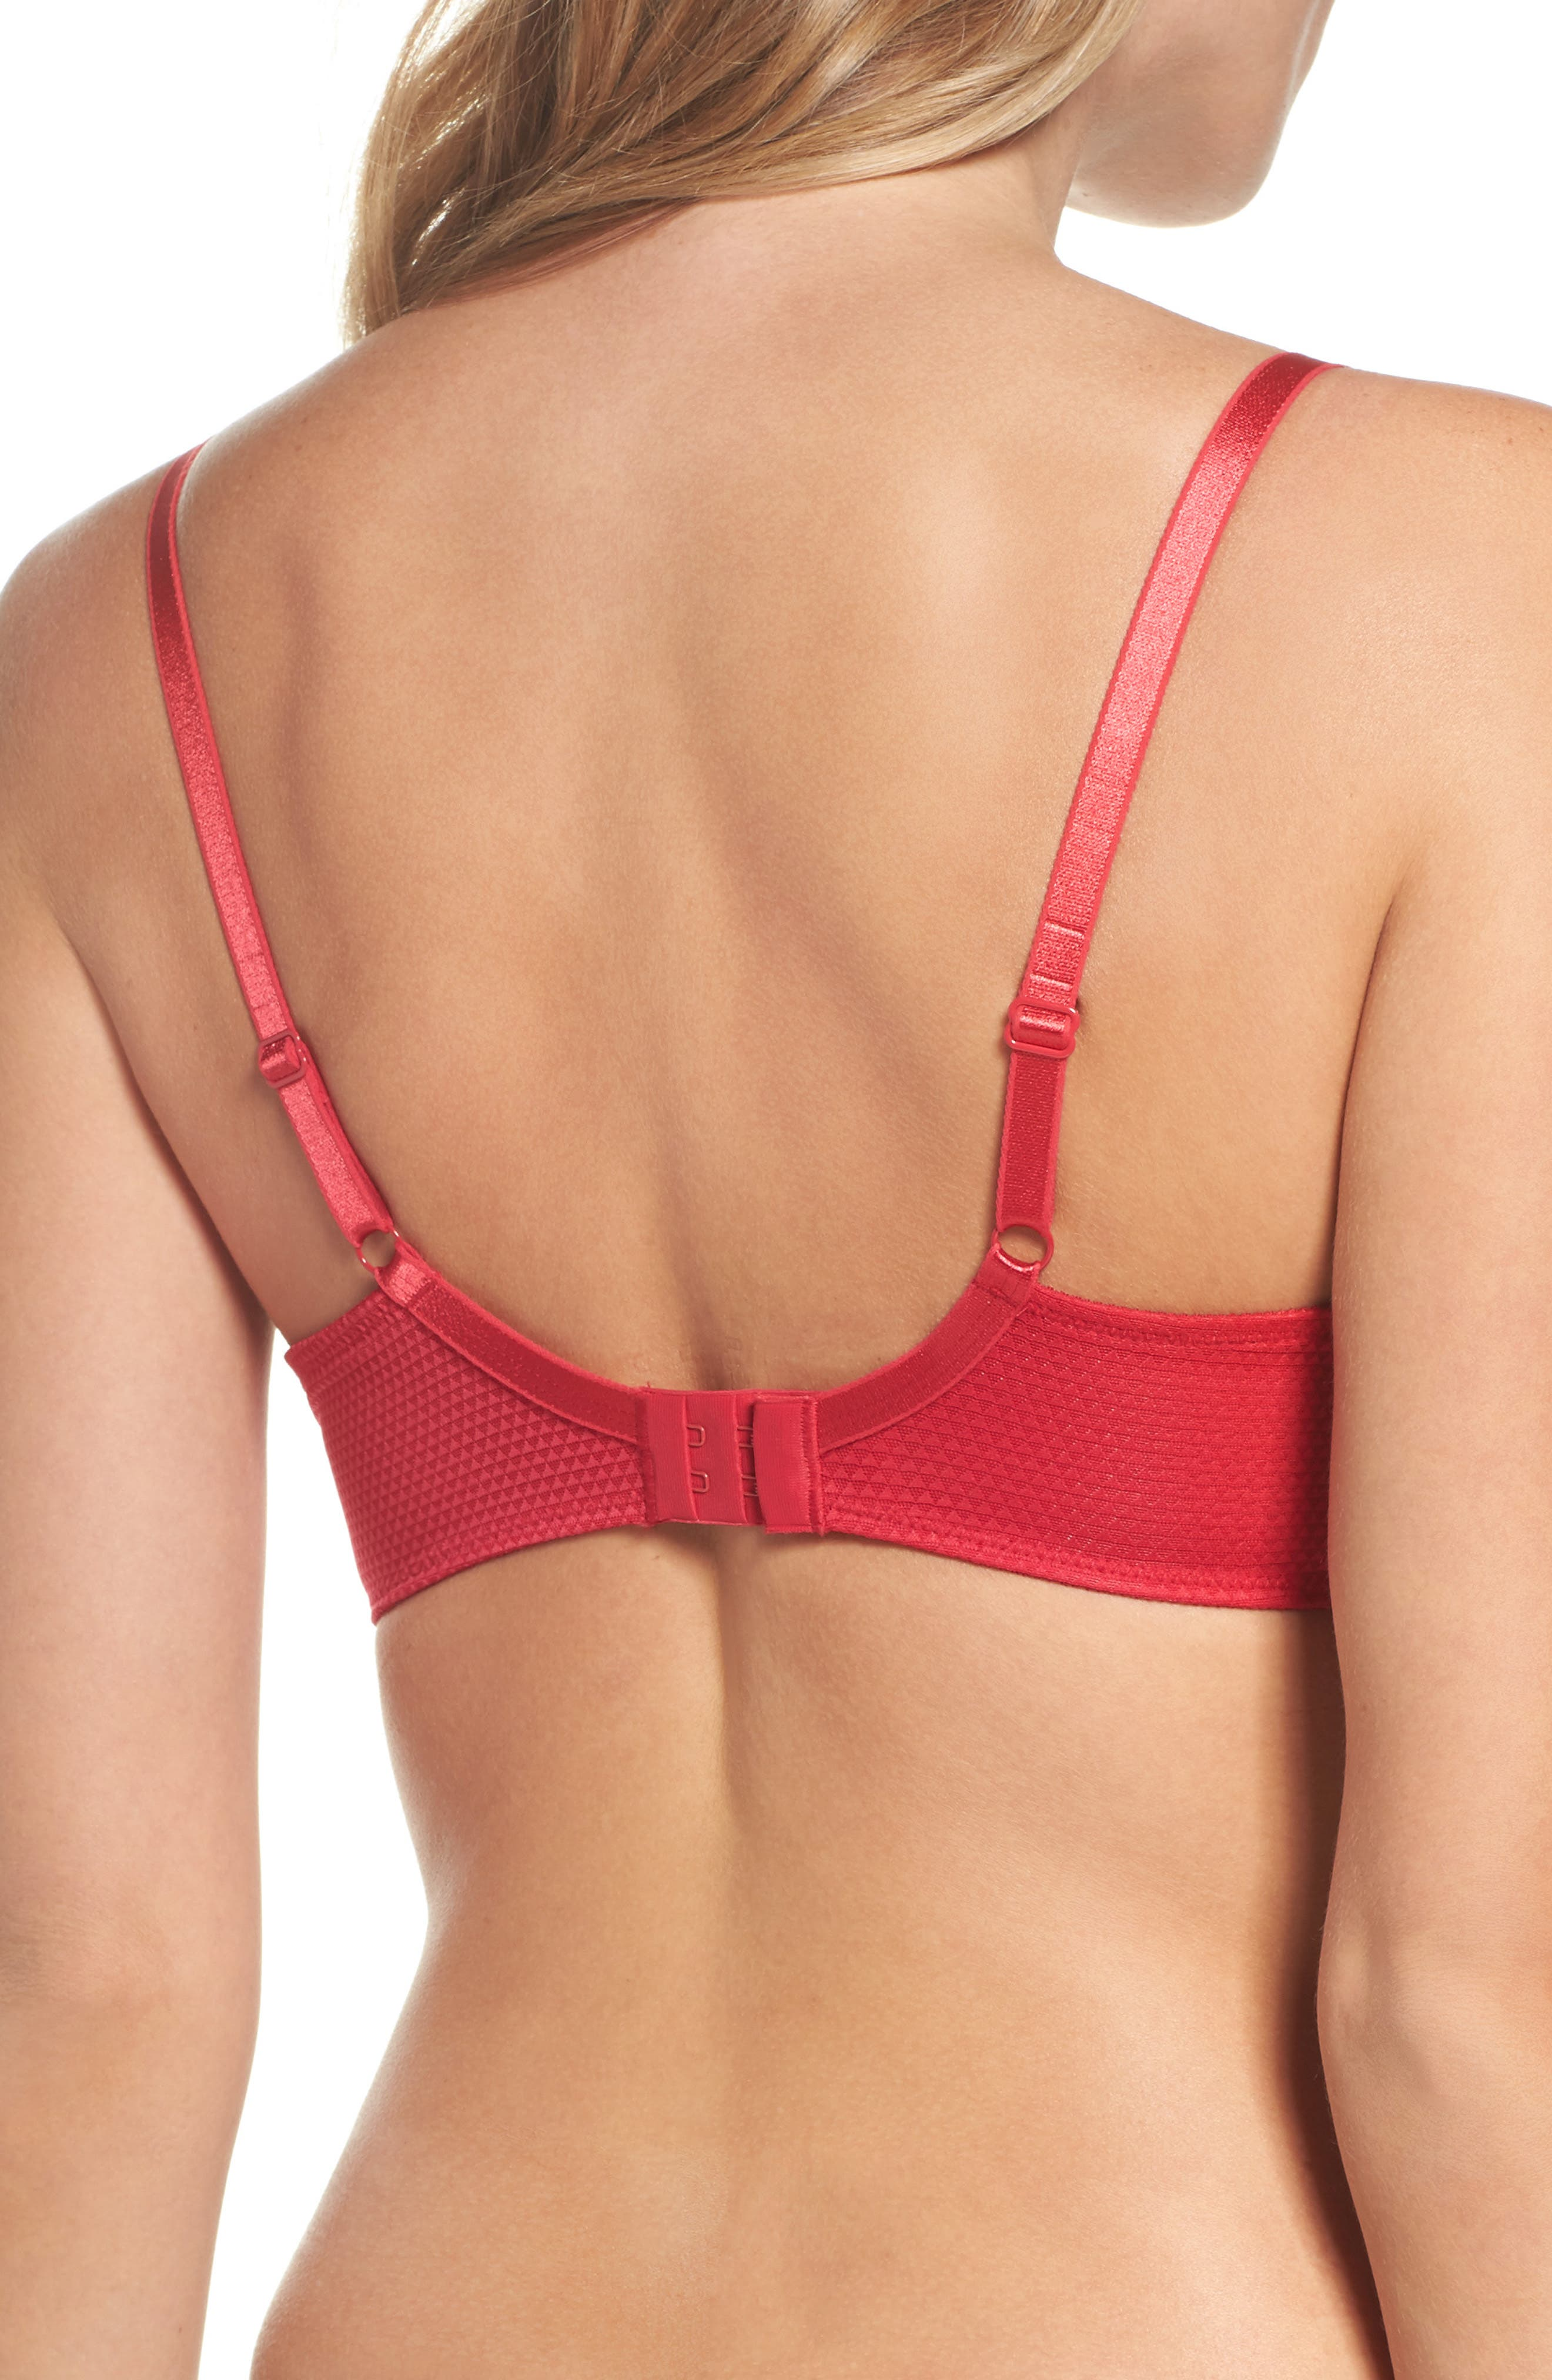 'Brooklyn' Underwire T-Shirt Bra,                             Alternate thumbnail 20, color,